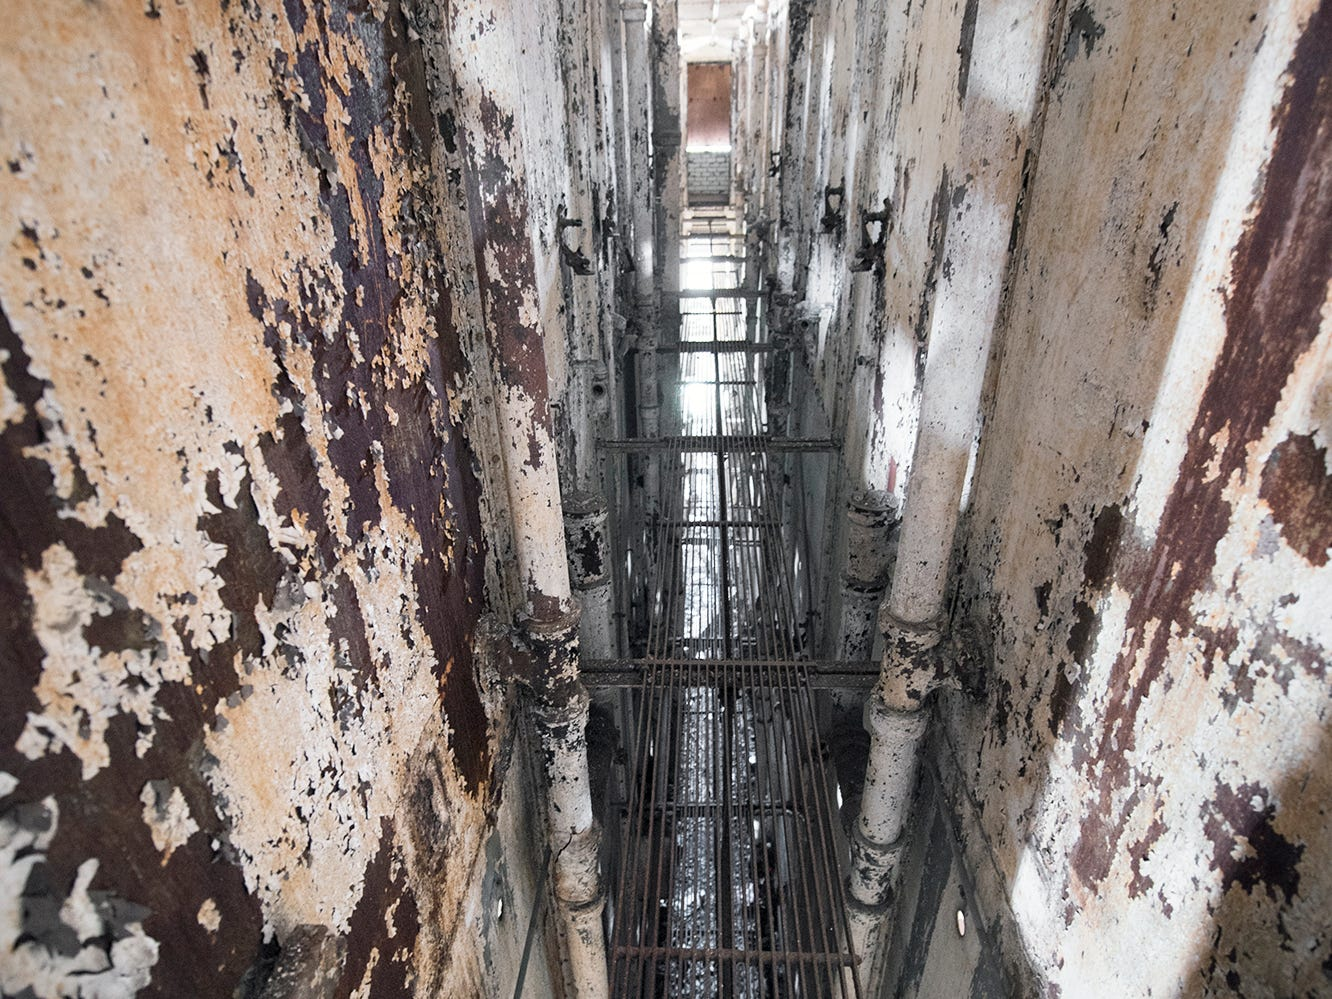 A catwalk runs the height of the prison on the back walls of the cells for access to plumbing inside the old York County Prison.